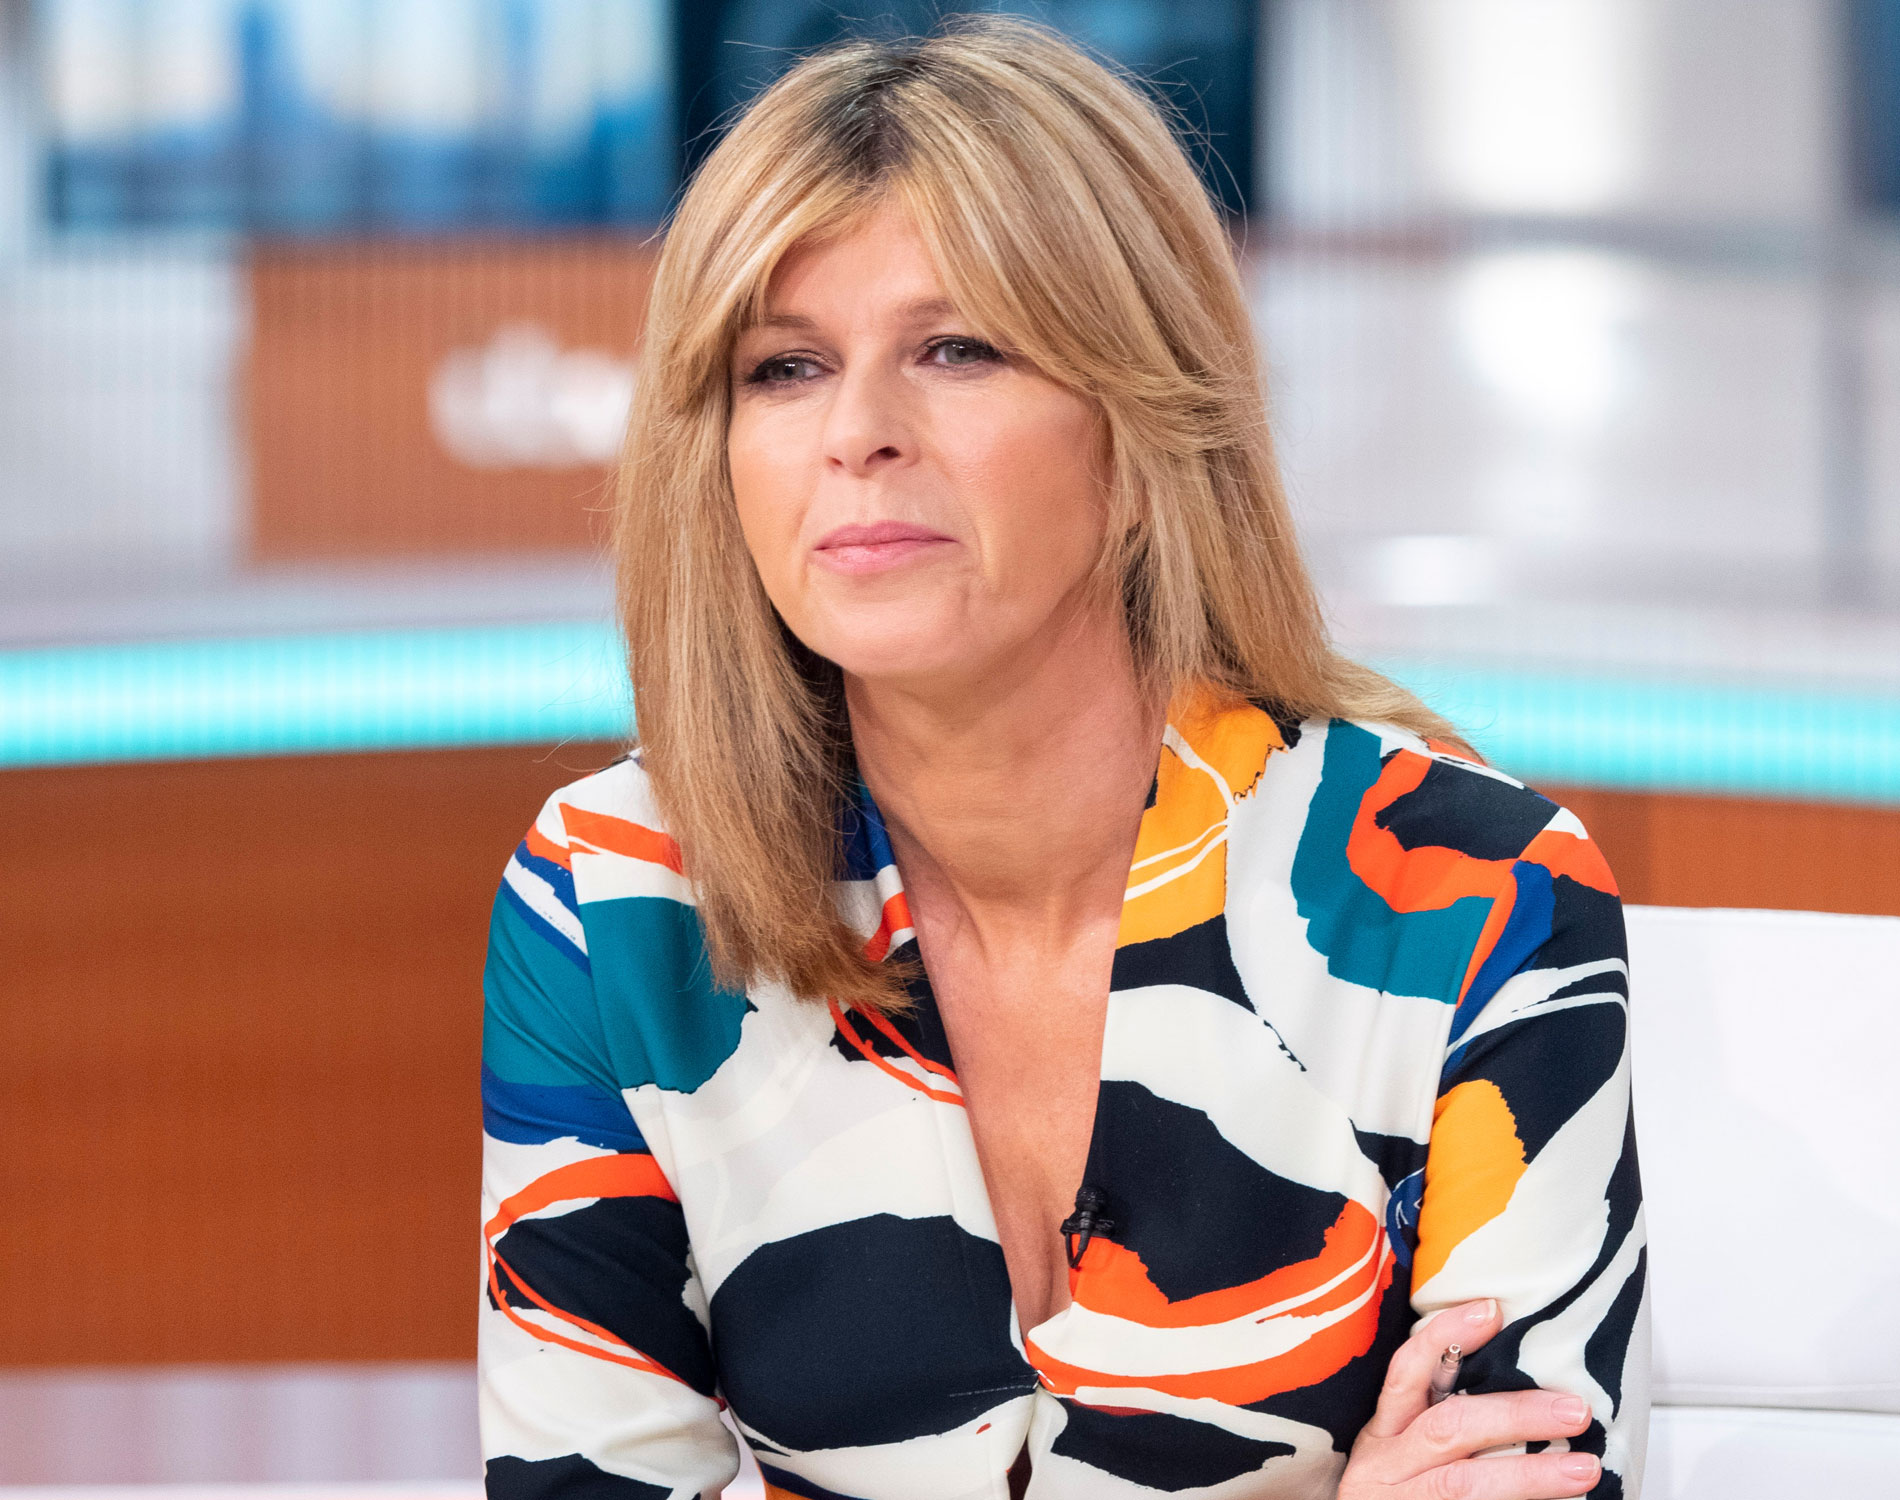 Kate Garraway reveals amazing results following serious health concerns